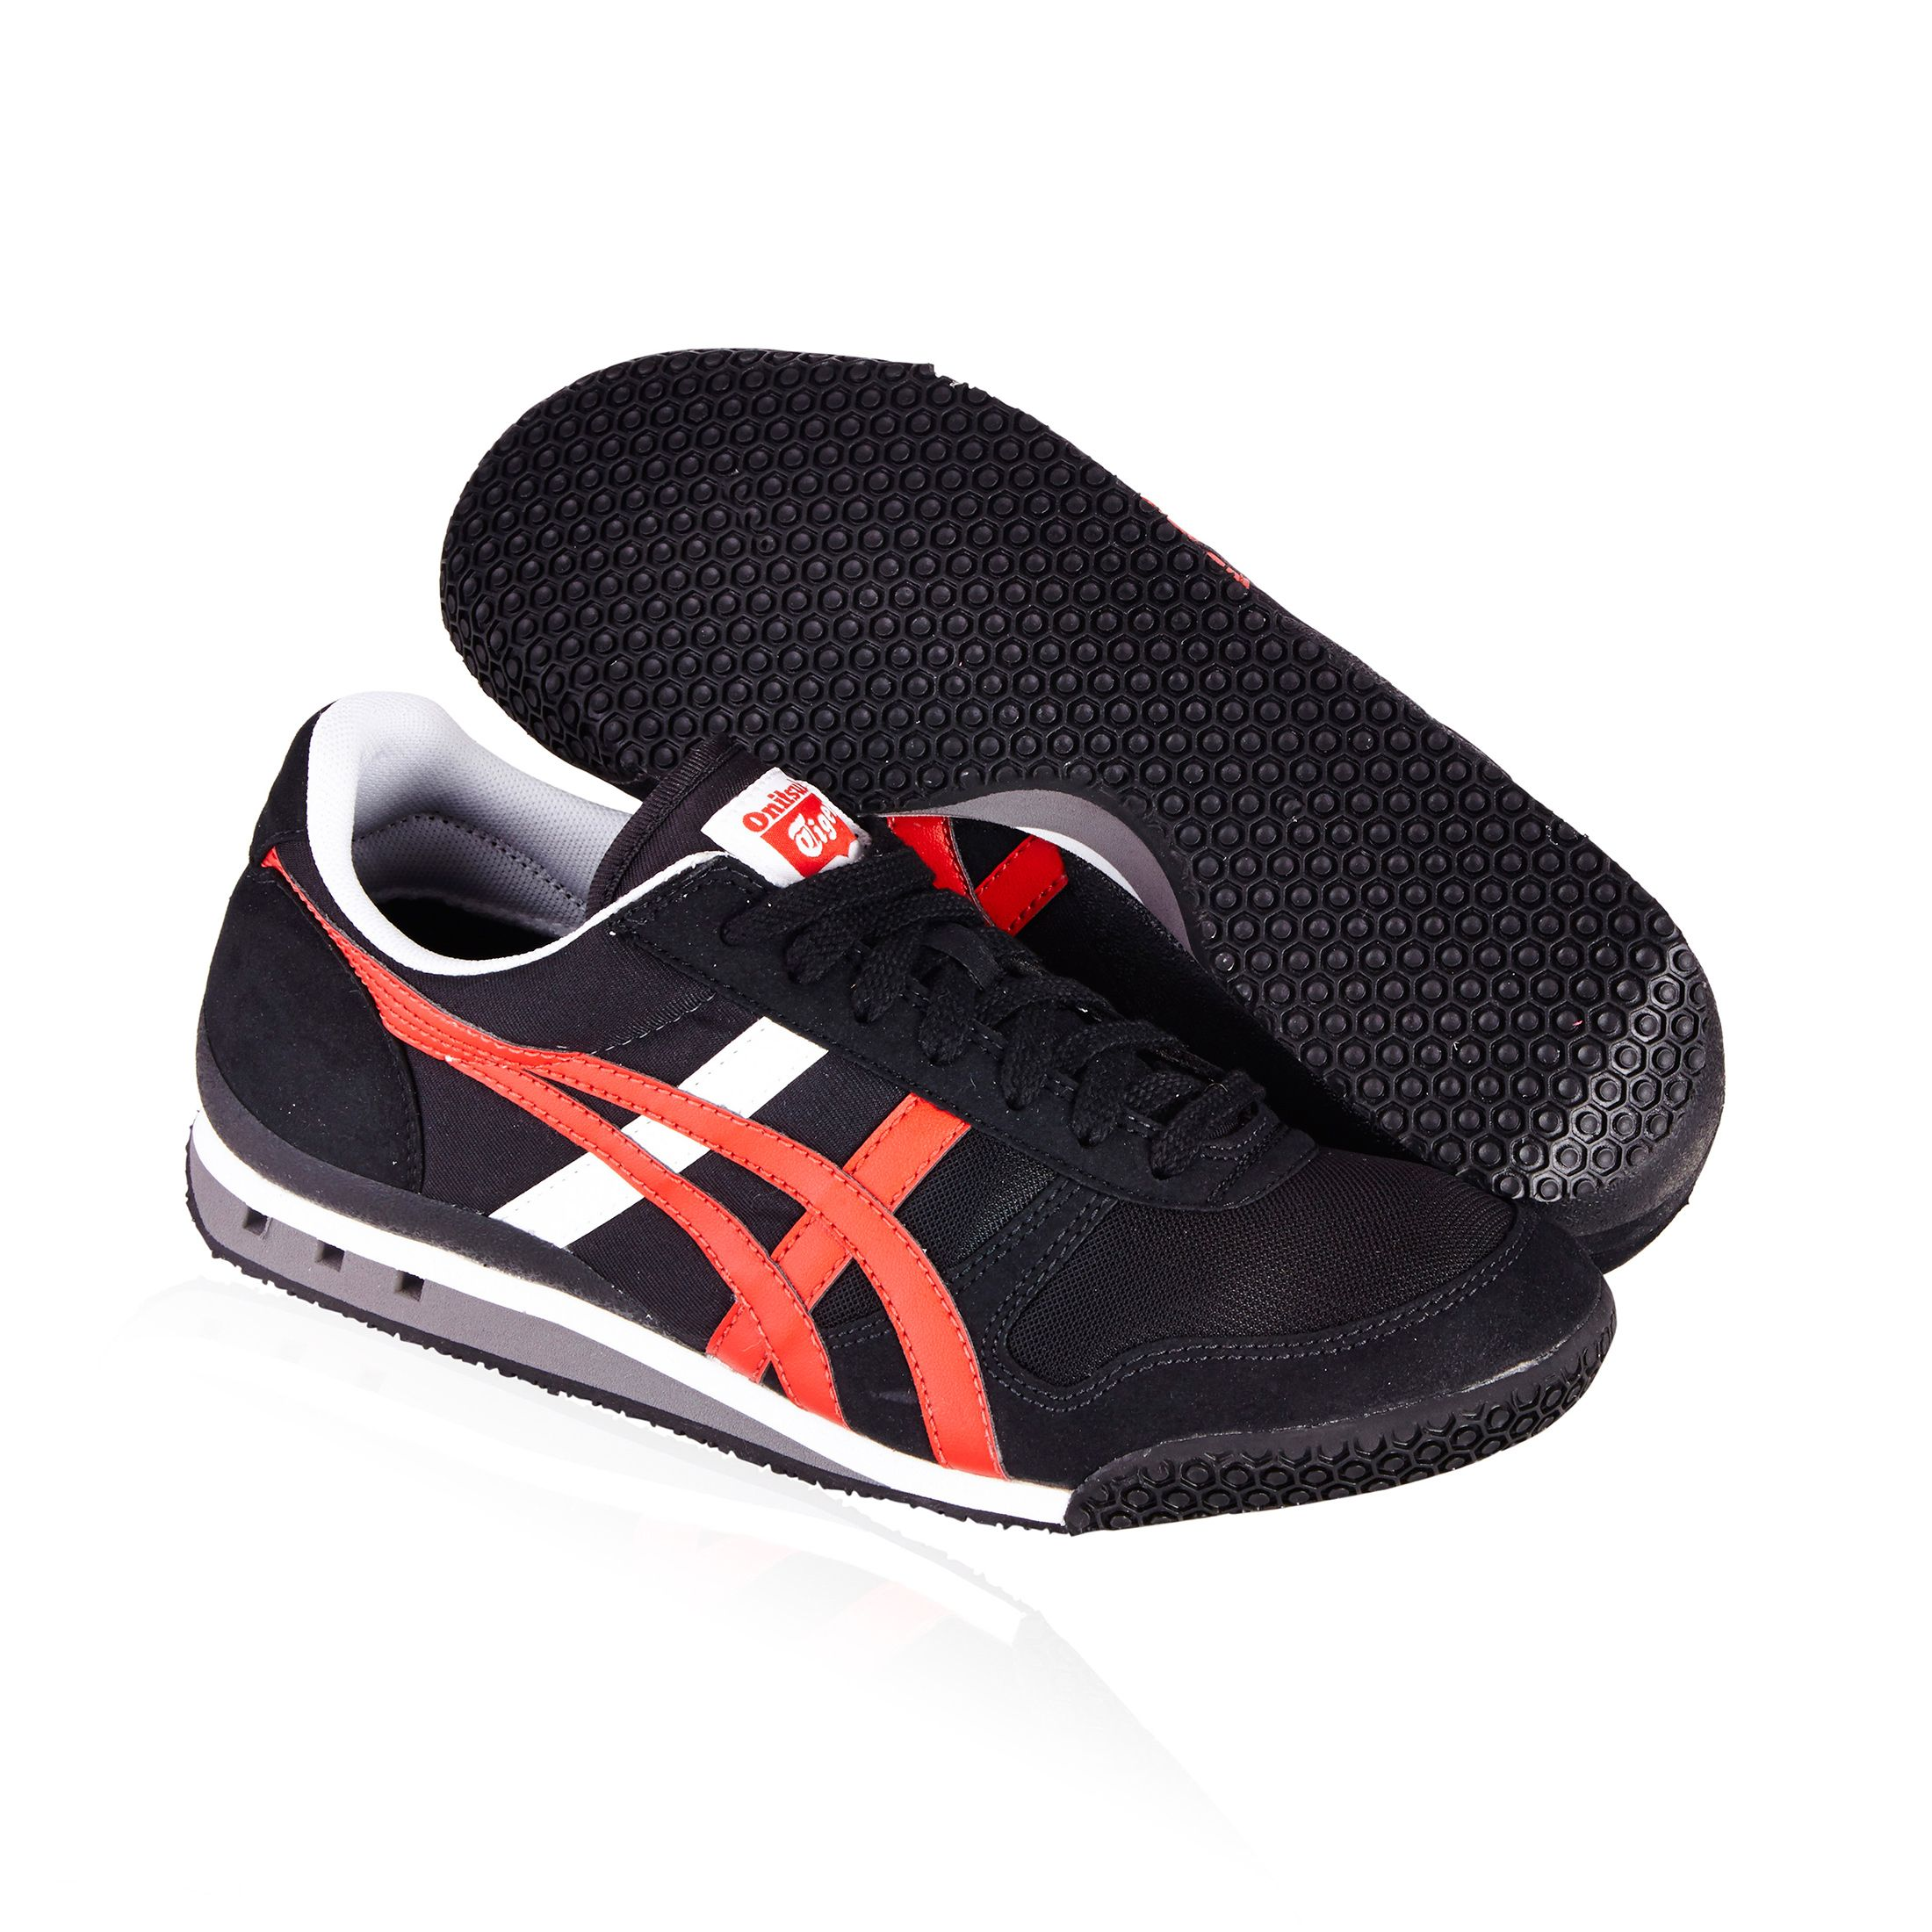 a1546e3cf437 Onitsuka Tiger Ultimate 81 casual shoe- black fiery red